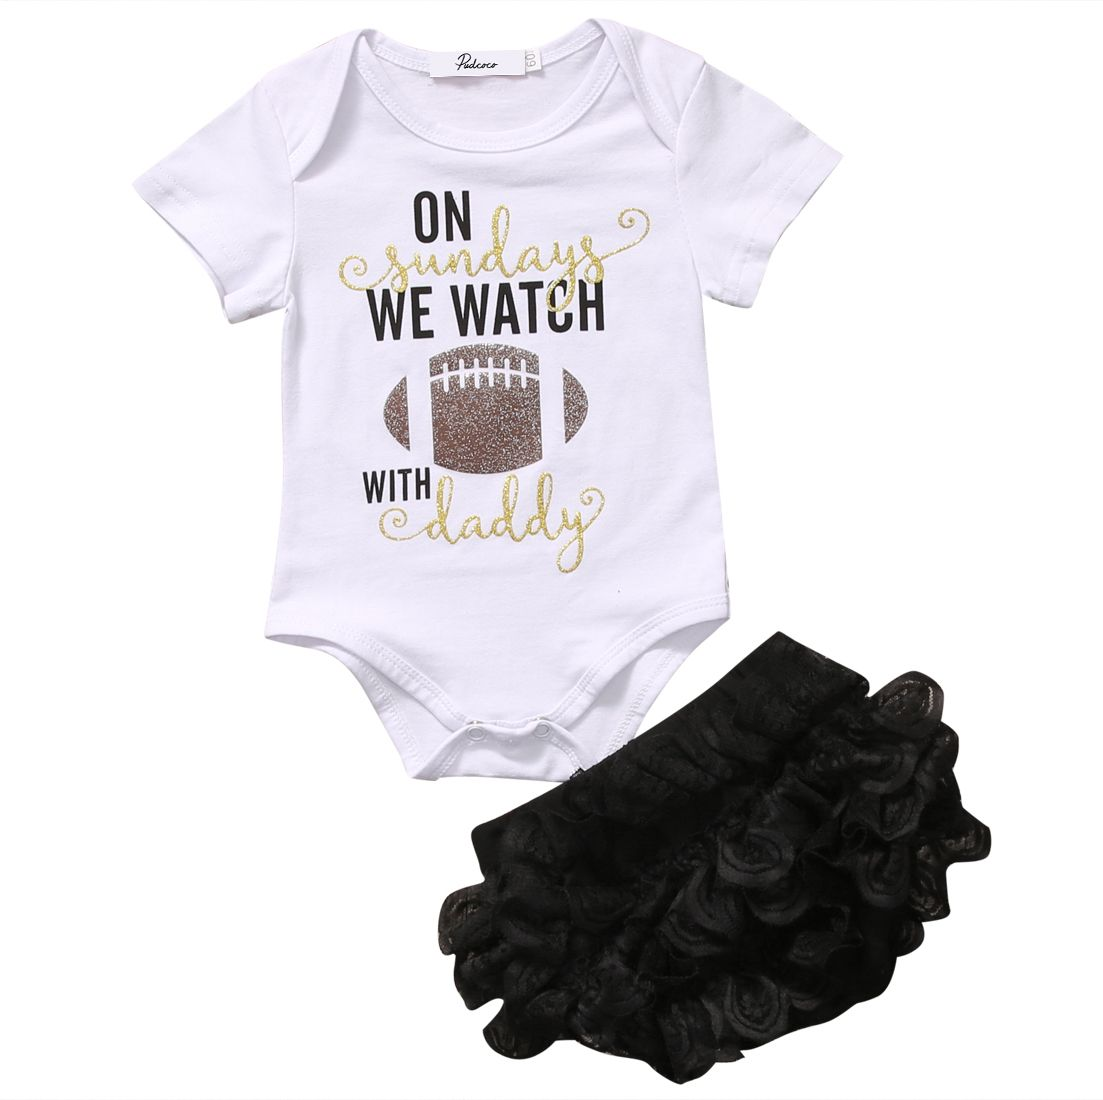 4 84 Buy Here Https Alitems Com G 1e8d114494ebda23ff8b16525dc3e8 I 5 Ulp Https 3a 2f 2fwww Alie Summer Baby Clothes Baby Bloomers Outfit Baby Girl Shorts